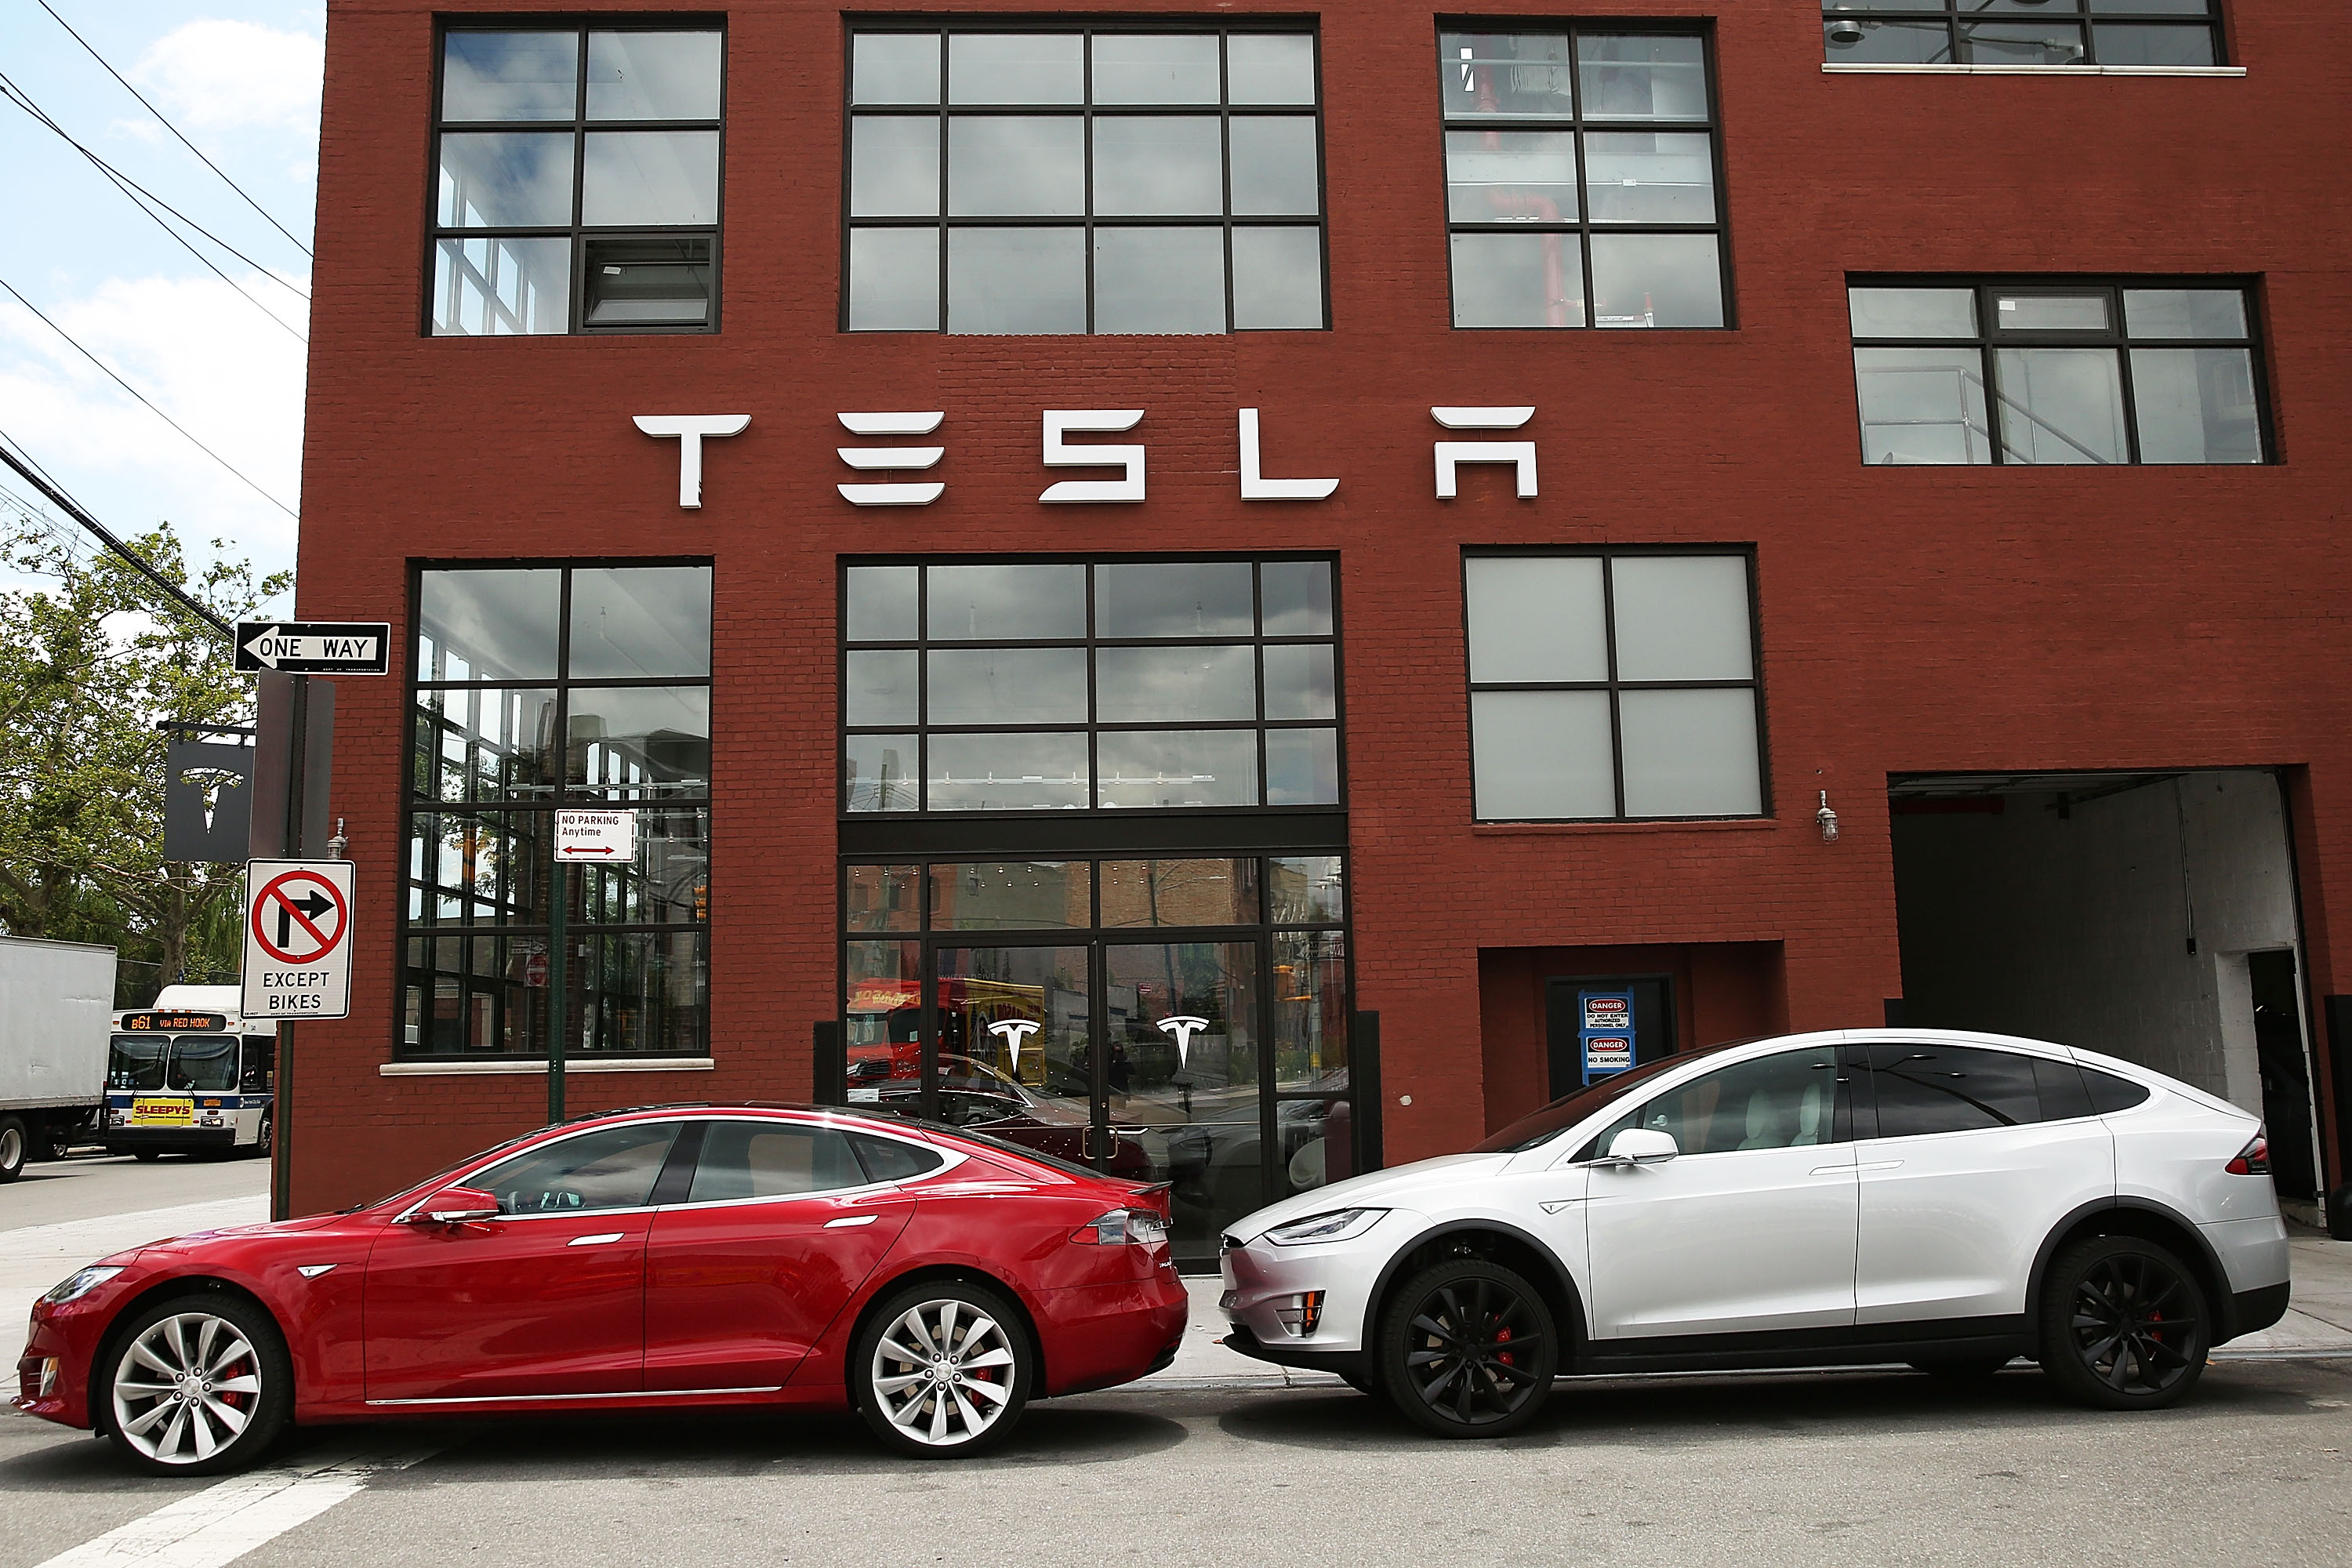 In this file photo, Tesla vehicles sit parked outside of a new Tesla showroom and service center in Red Hook, Brooklyn on July 5, 2016 in New York City.